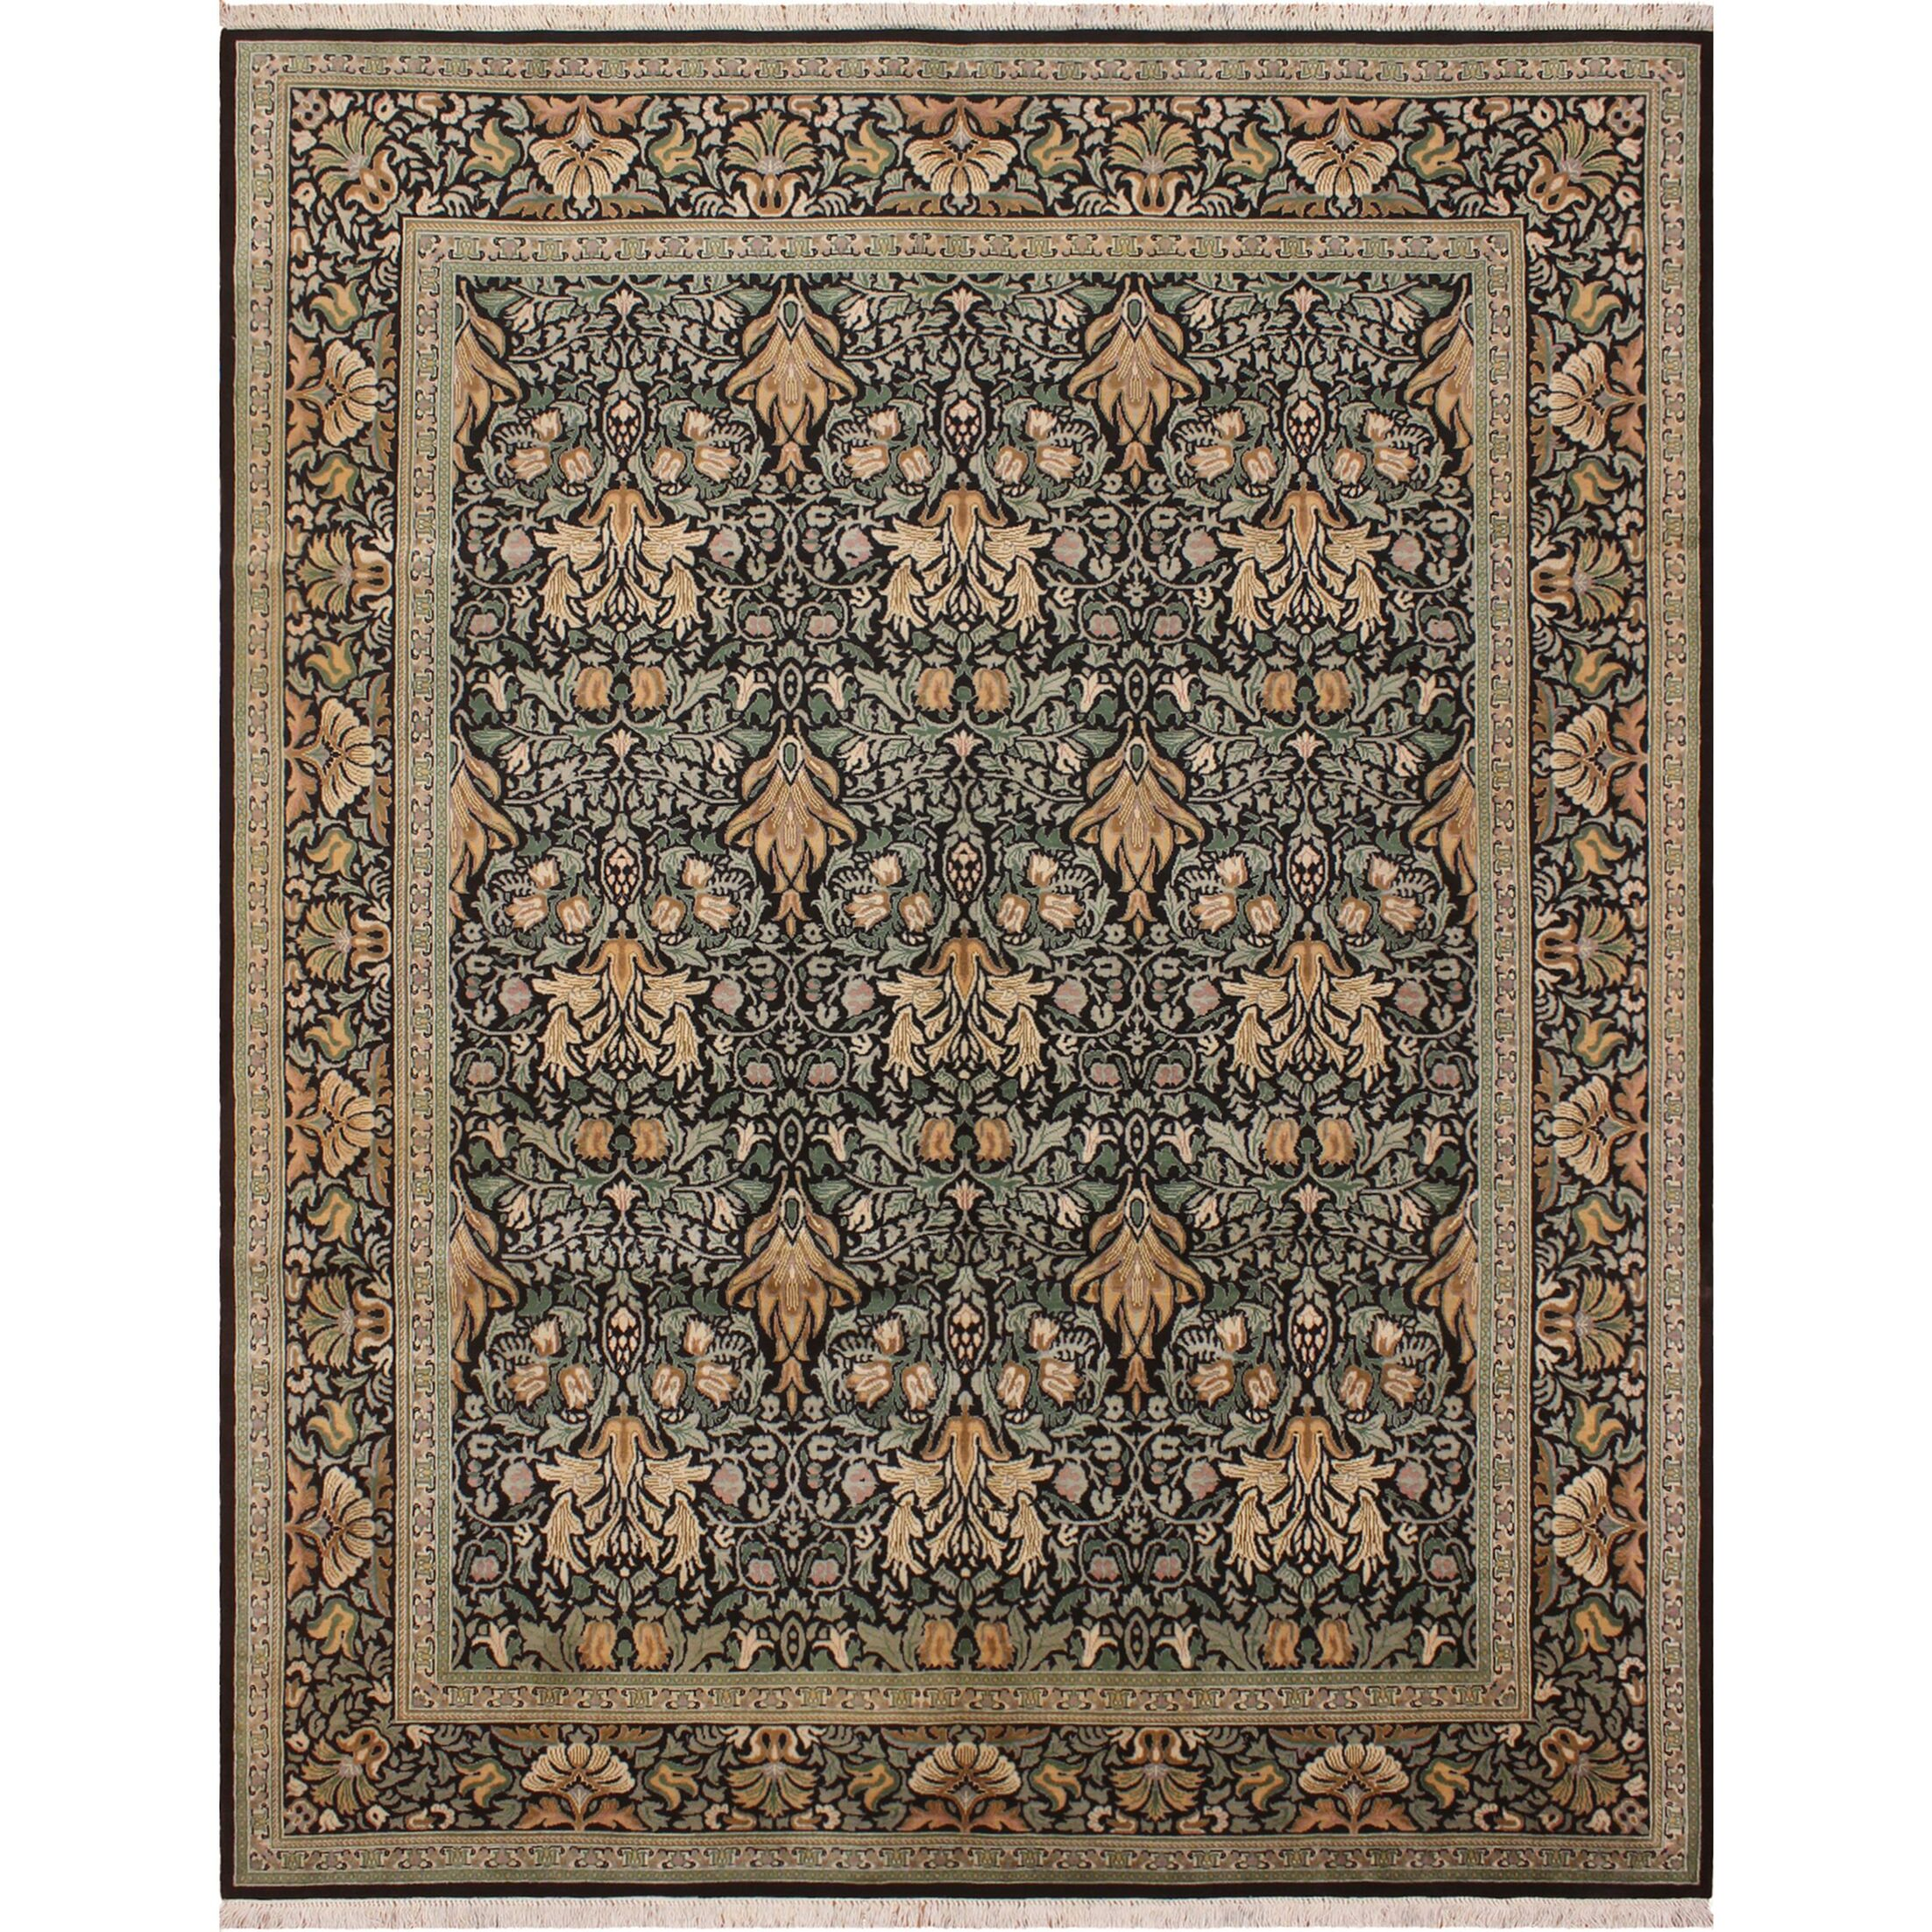 One-of-a-Kind Mulhall Hand-Knotted Wool Black/Green Area Rug Rug Size: Rectangle 8' x 10'2